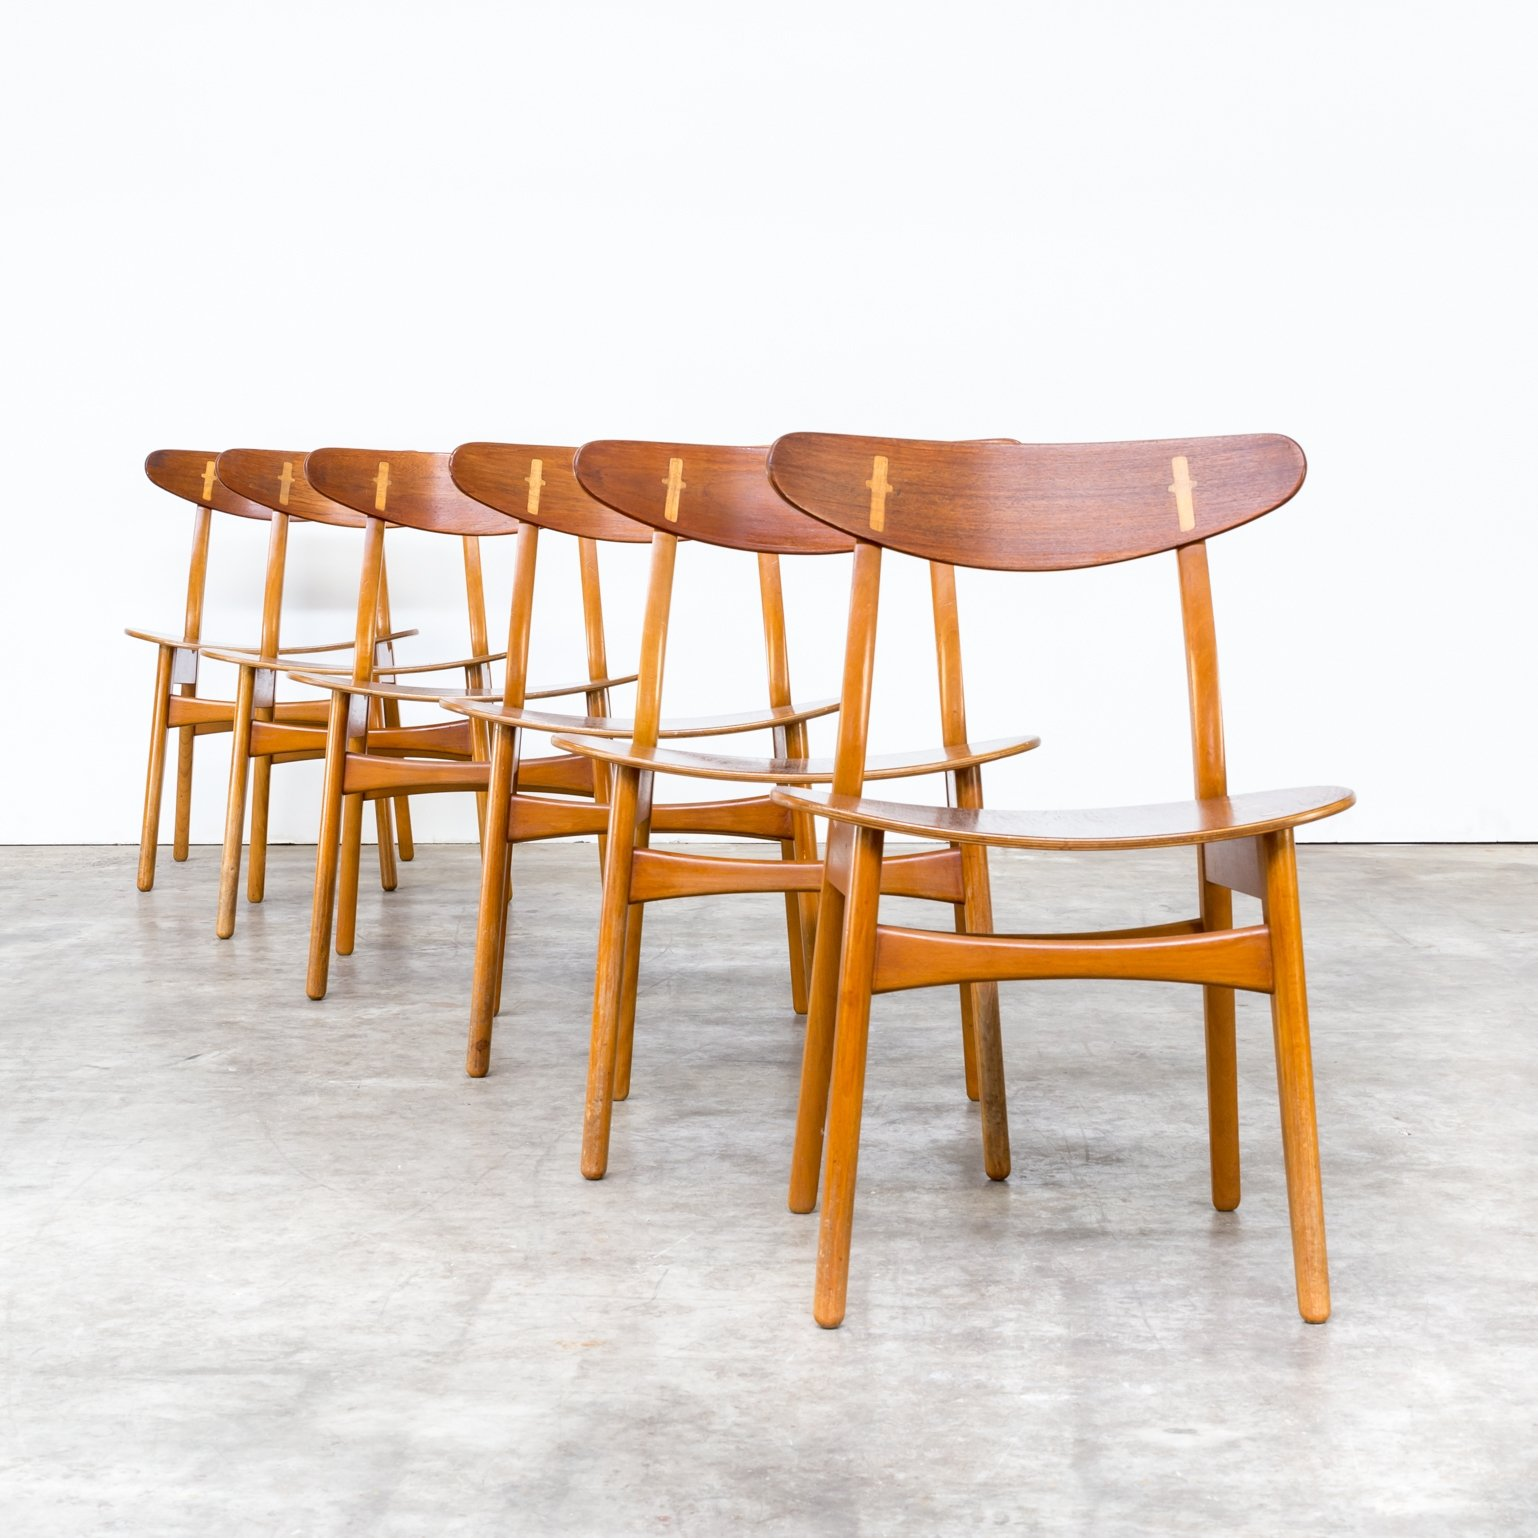 set of 6 39 ch 30 39 hans wegner dining chairs for carl hansen son 1950s 72943. Black Bedroom Furniture Sets. Home Design Ideas